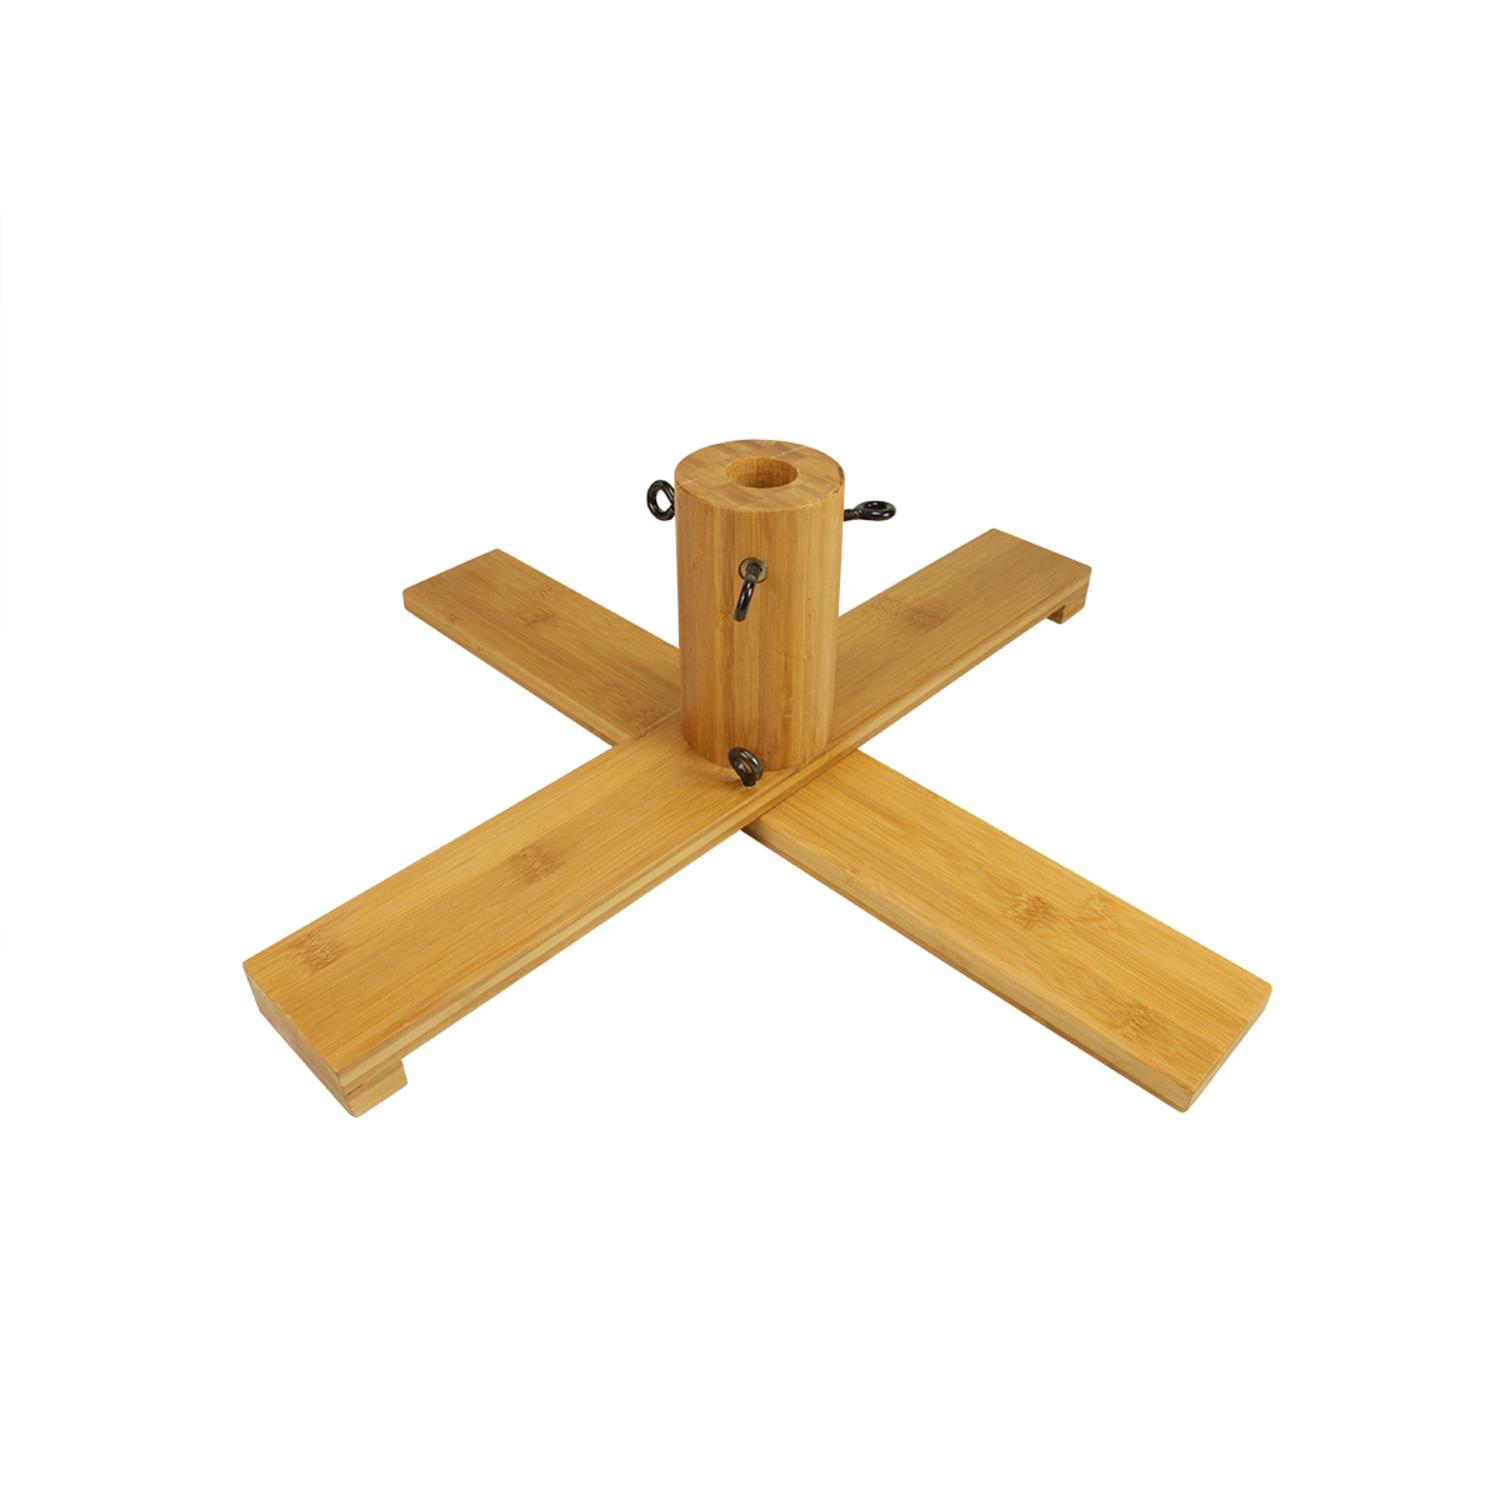 Wooden Christmas Tree Stand For 6.5' - 7' Artificial Trees